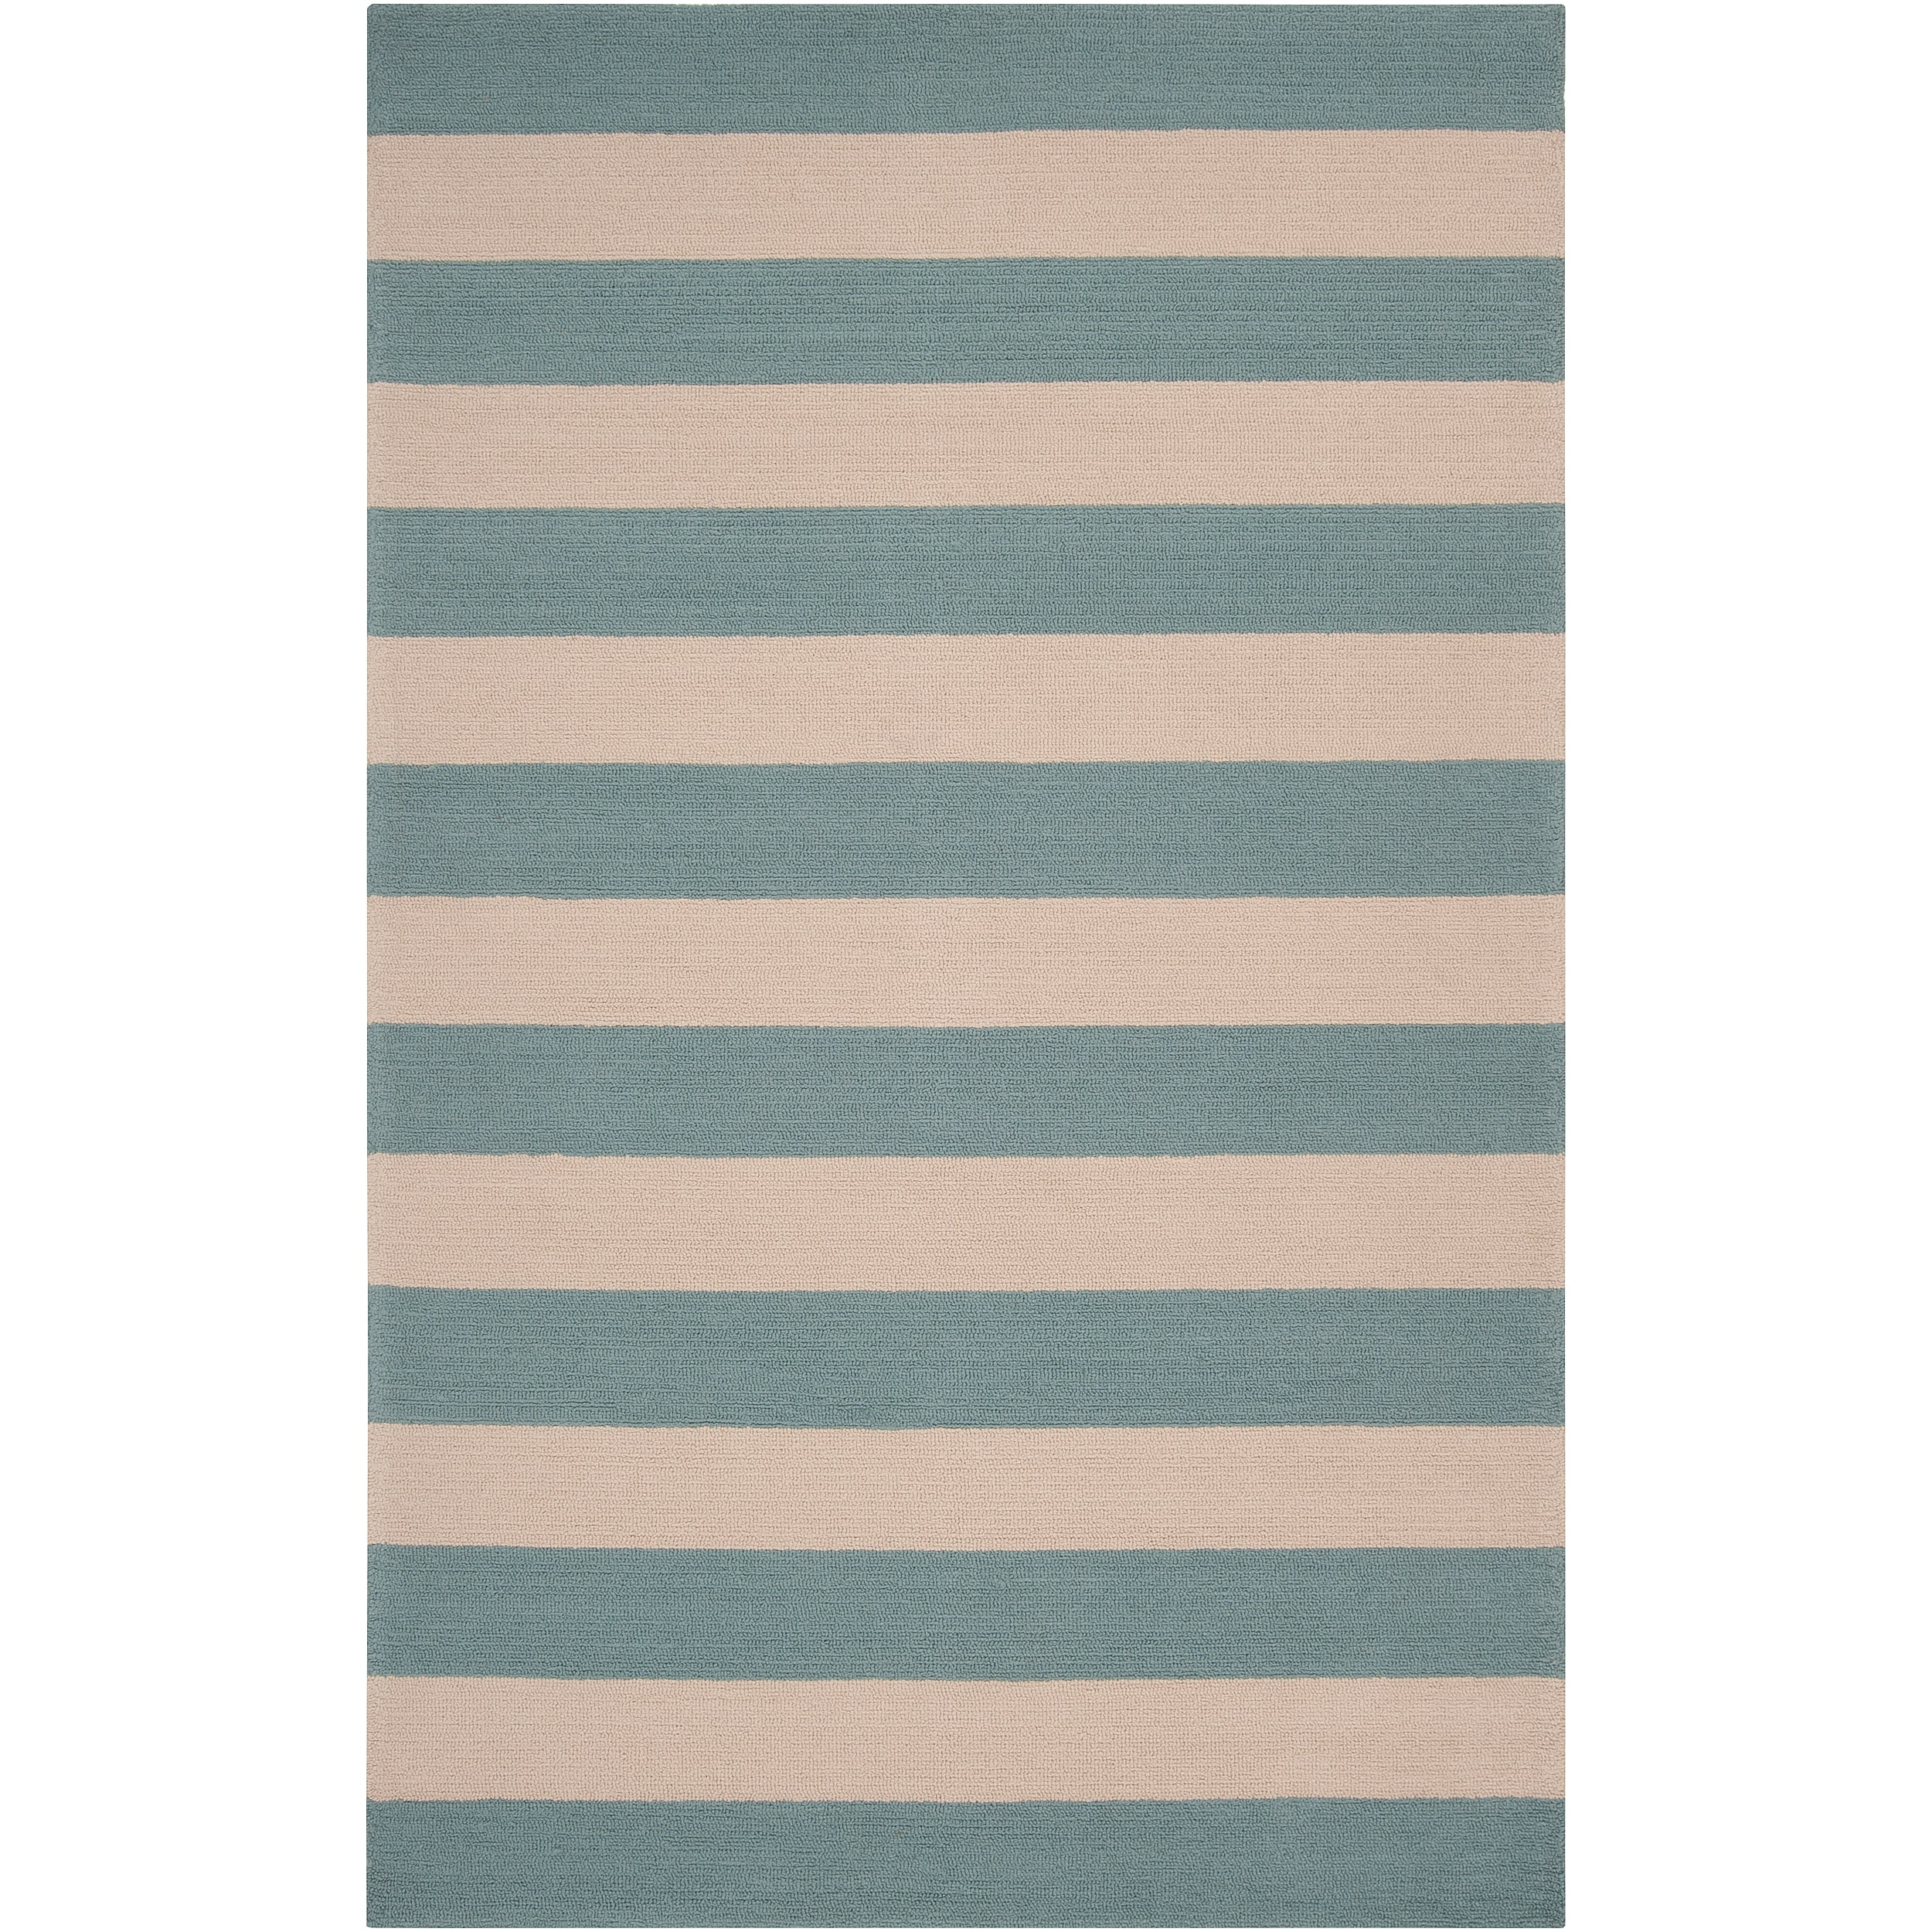 Hand-hooked Blue Maligne Indoor/Outdoor Stripe Rug (8' x 10') - Thumbnail 0